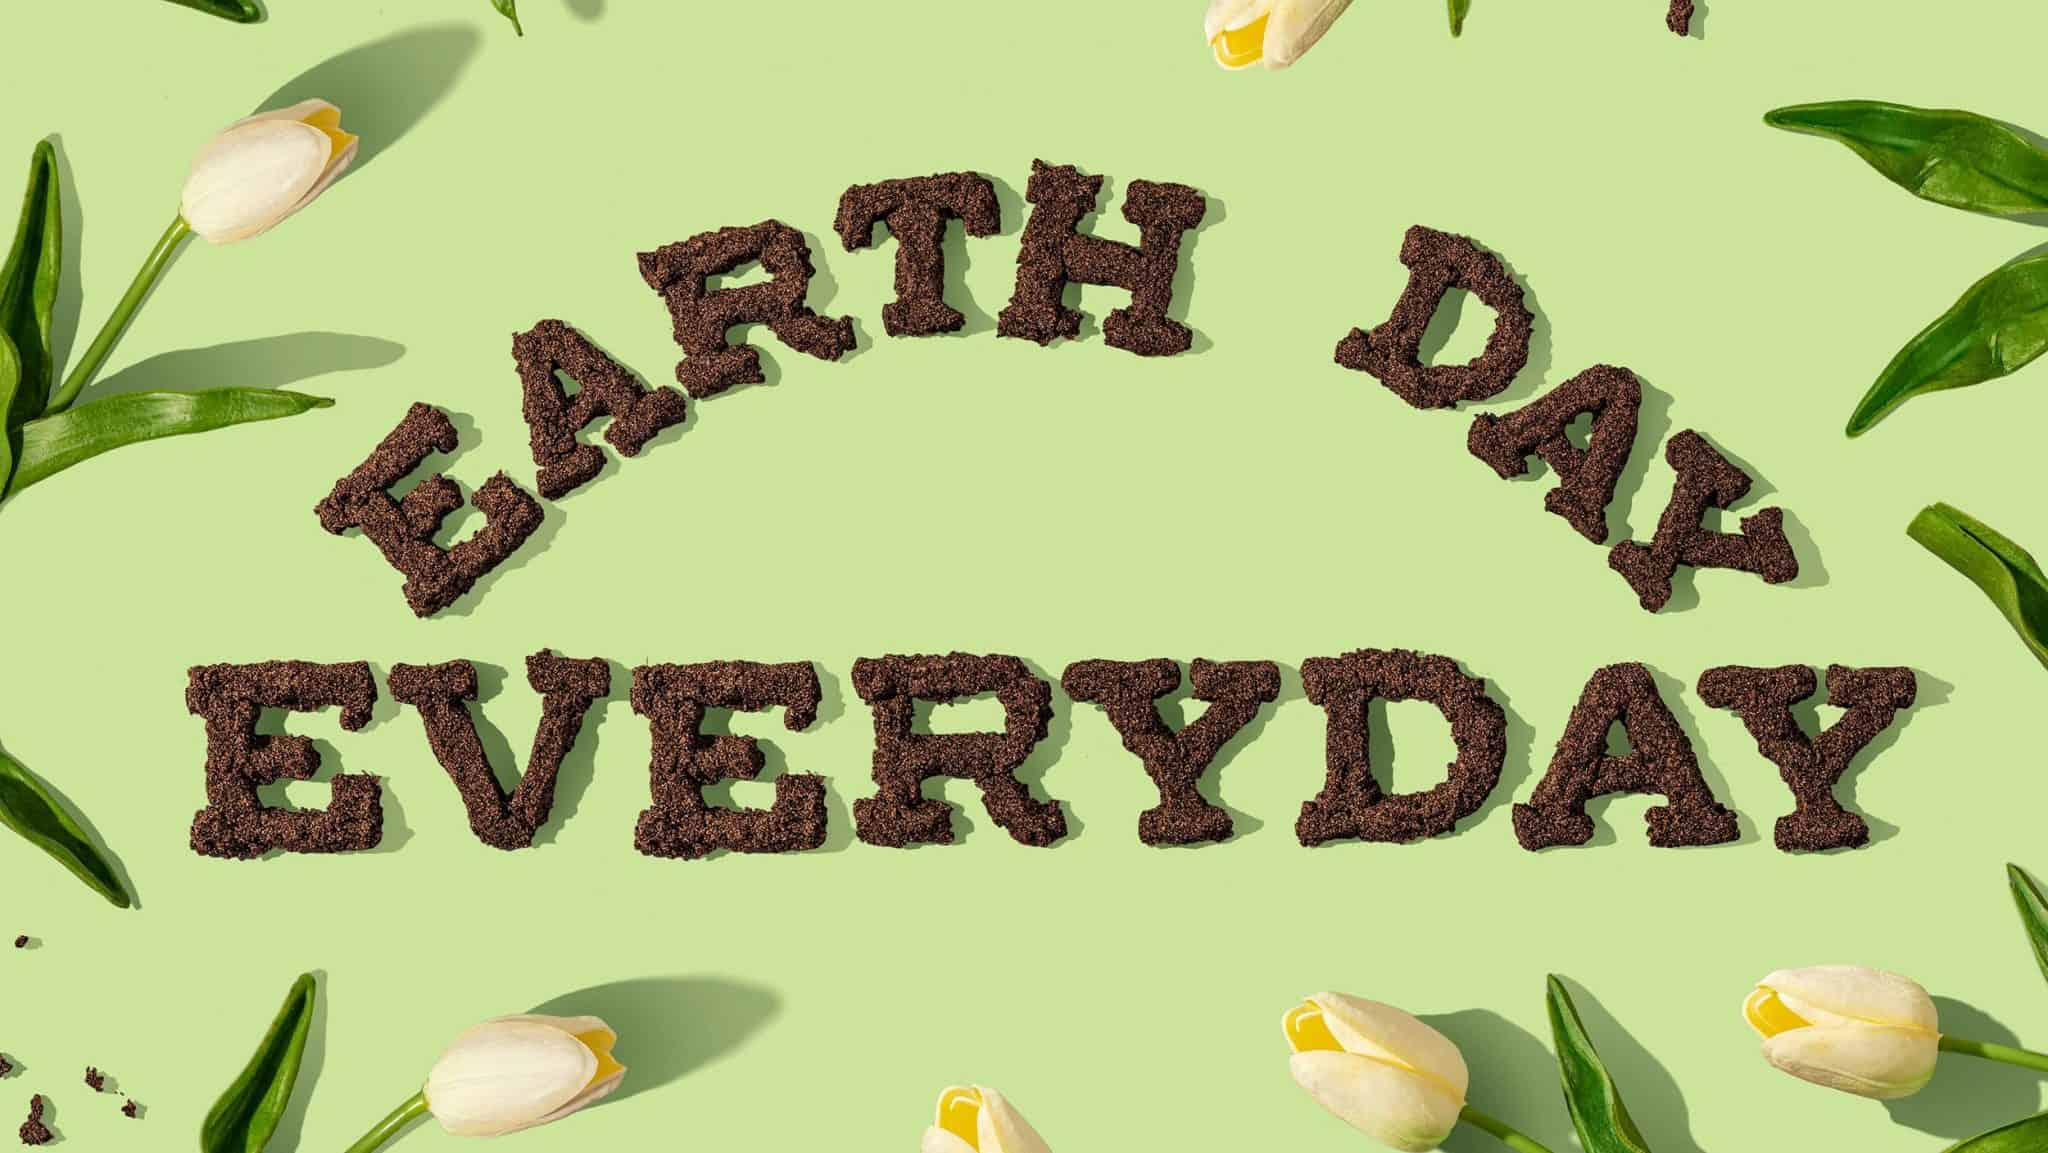 Earth Day Everyday cartoon on a green grass background with flowers